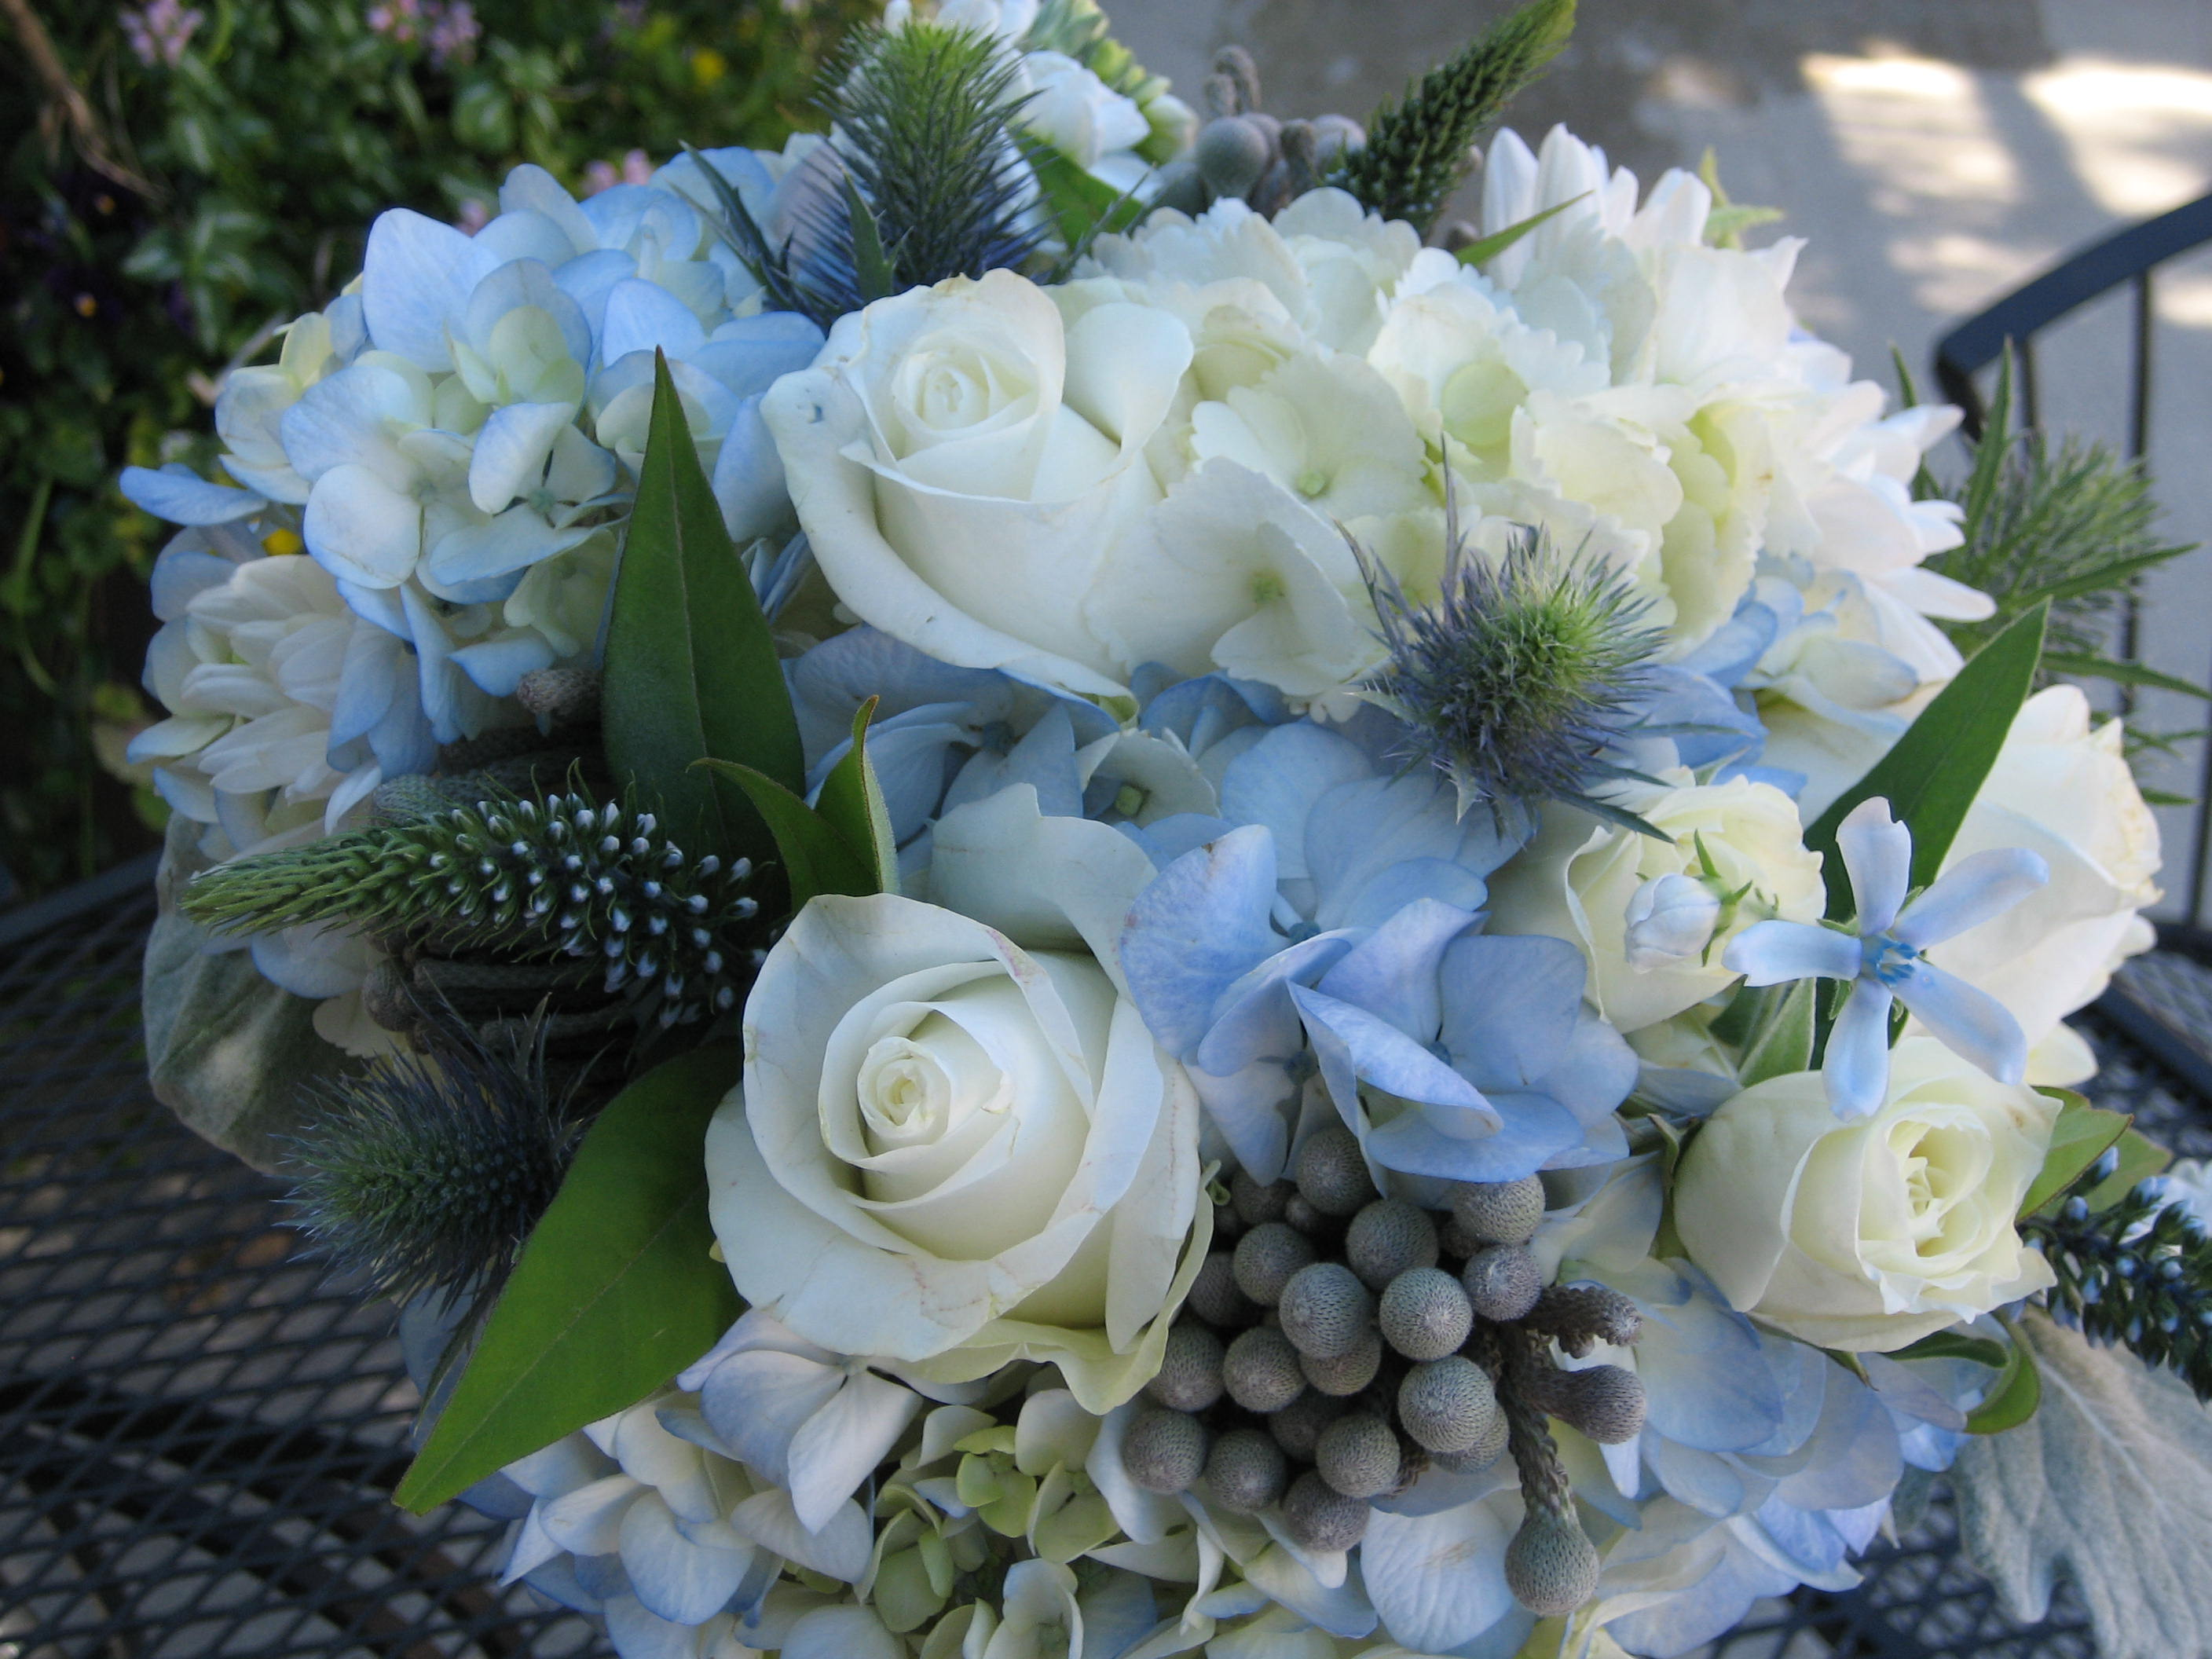 Bridal bouquets july 2010 blue bridal bouquet with hydrangea white roses berries scabios izmirmasajfo